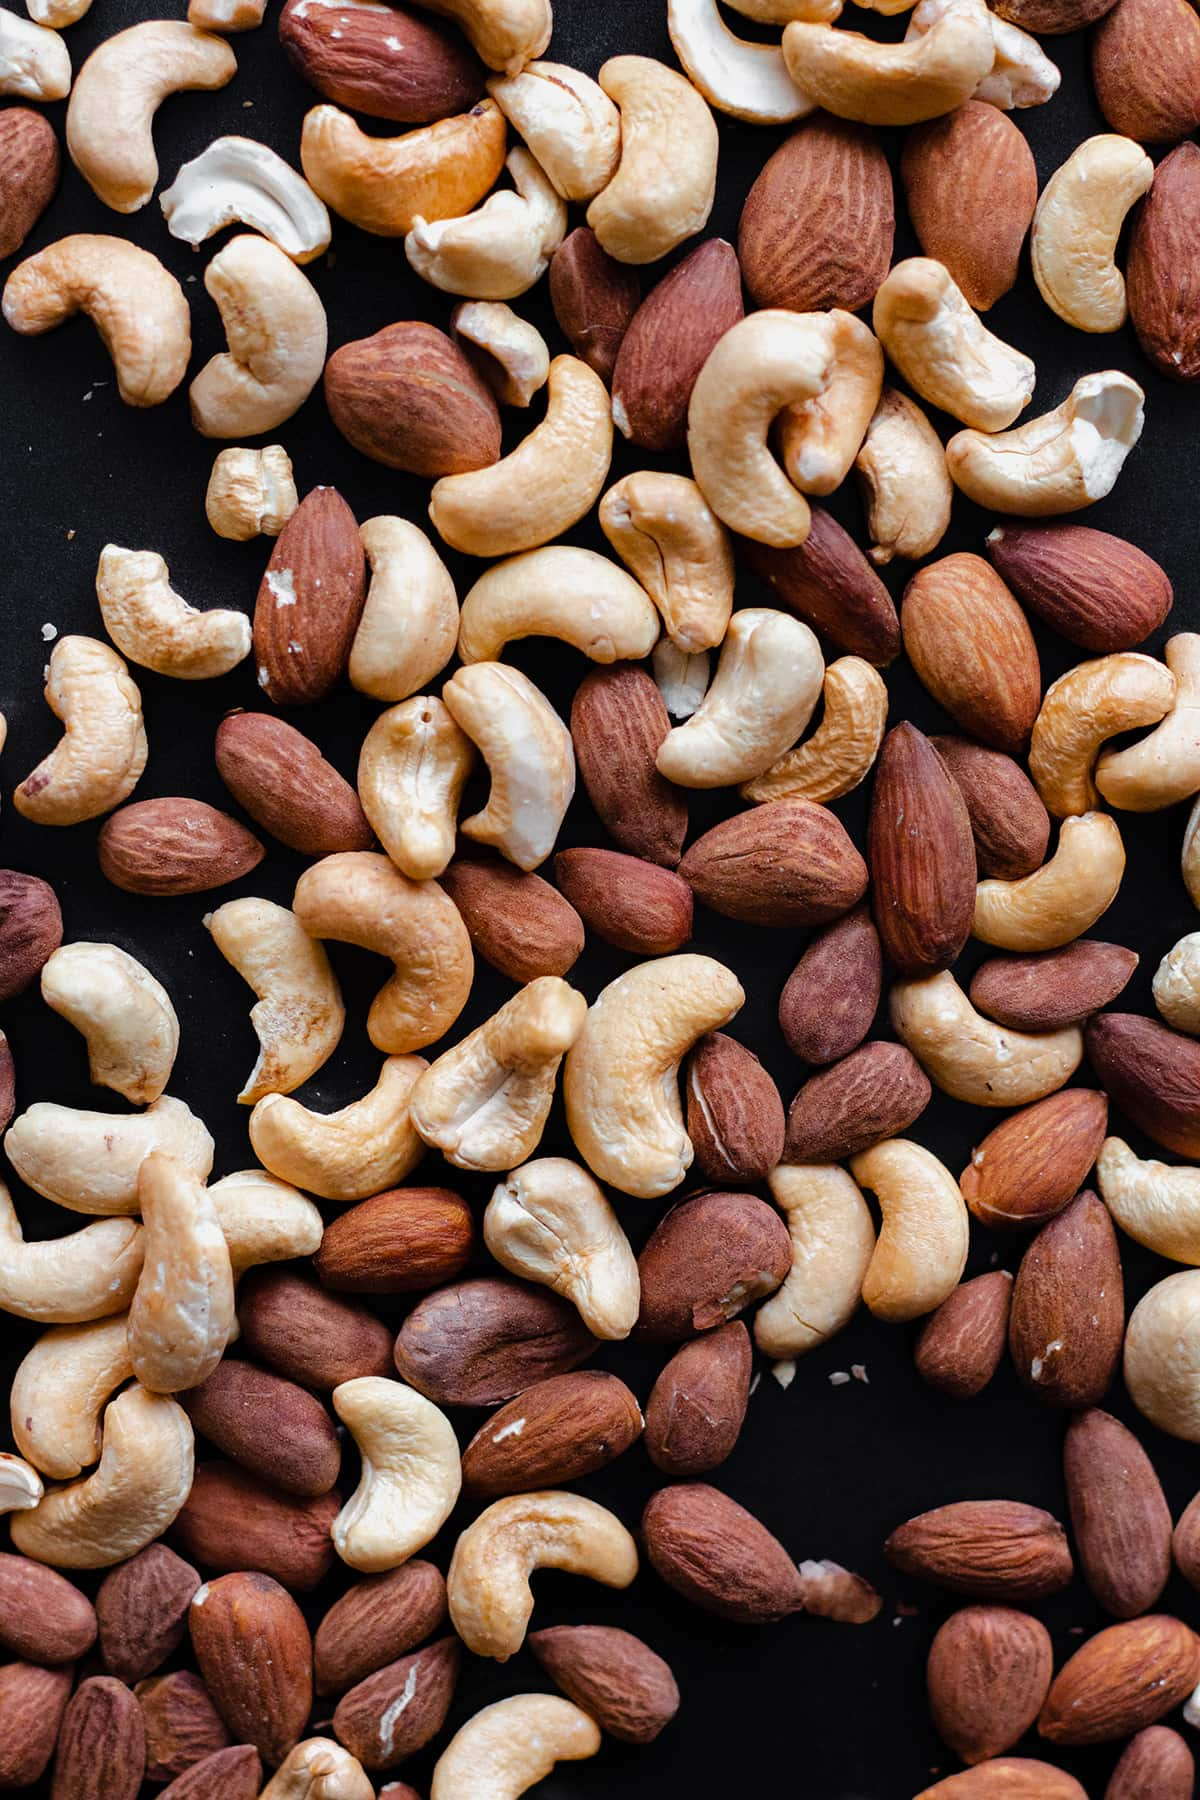 Cashews and almonds on a black background.